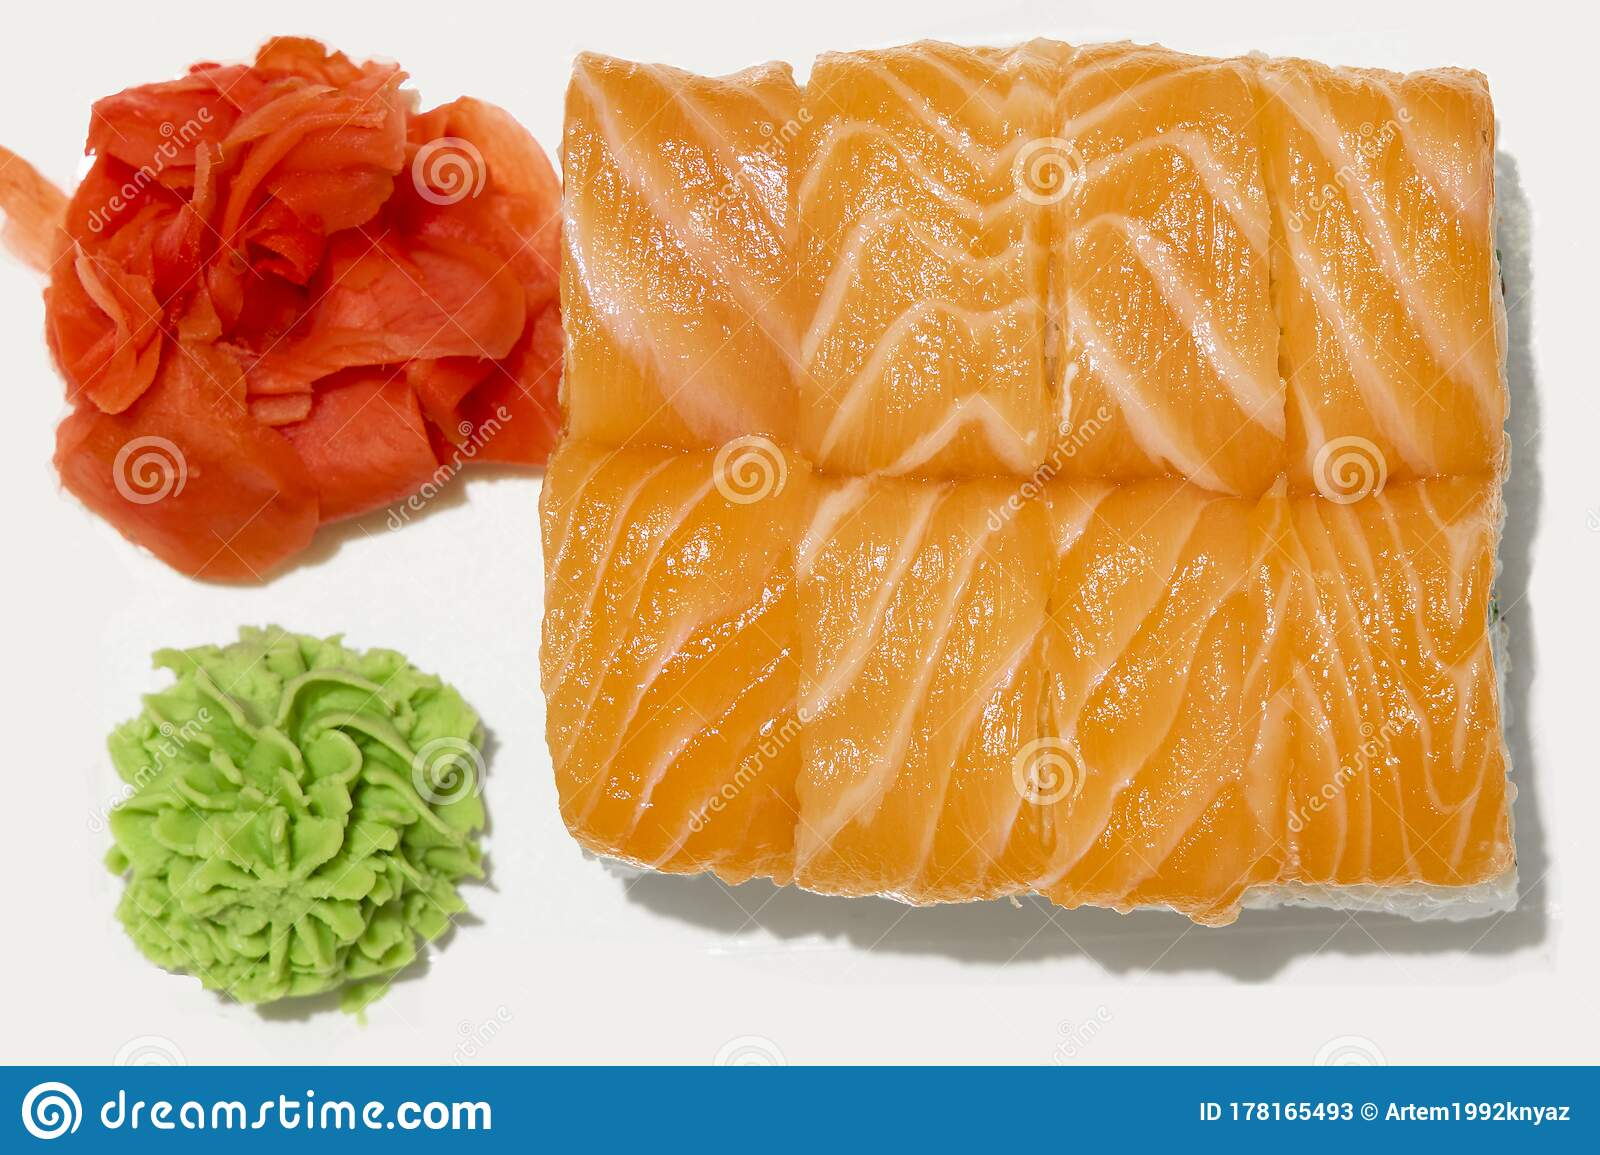 Sushi Roll Salmon Raw Fish Food Photography White Isolation Studio Background Ginger And Wasabi Cafe Or Restaurant Menu Asian Stock Image Image Of Ginger Natural 178165493